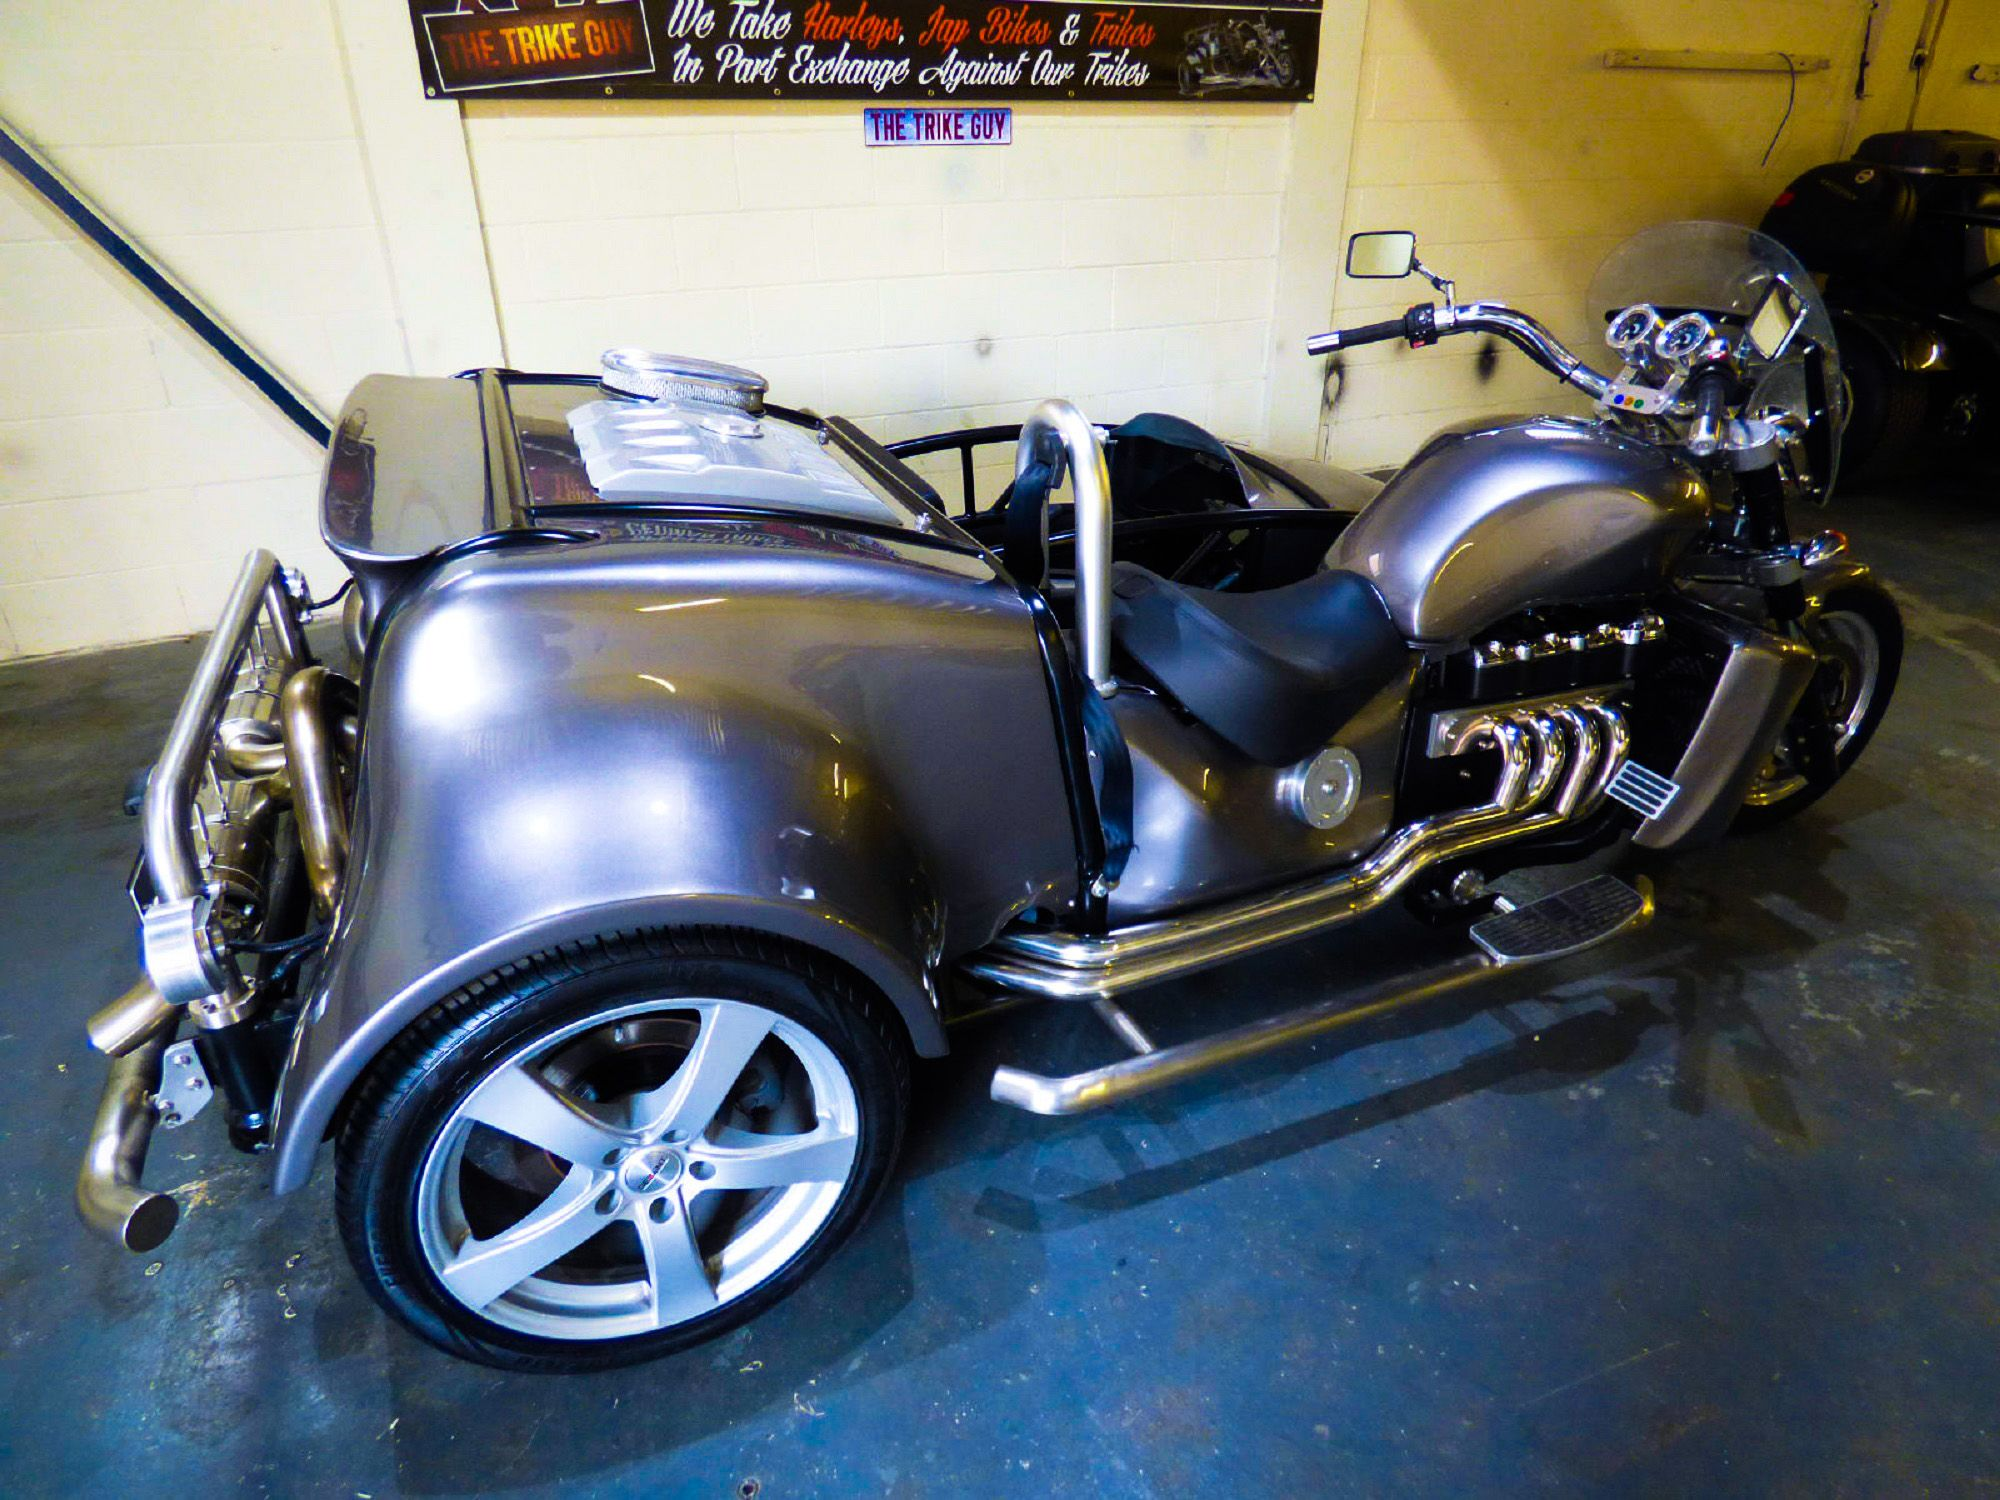 Cadillac V8 4.7 Litre Trike / Side Car, on eBay with Classified Ad ...